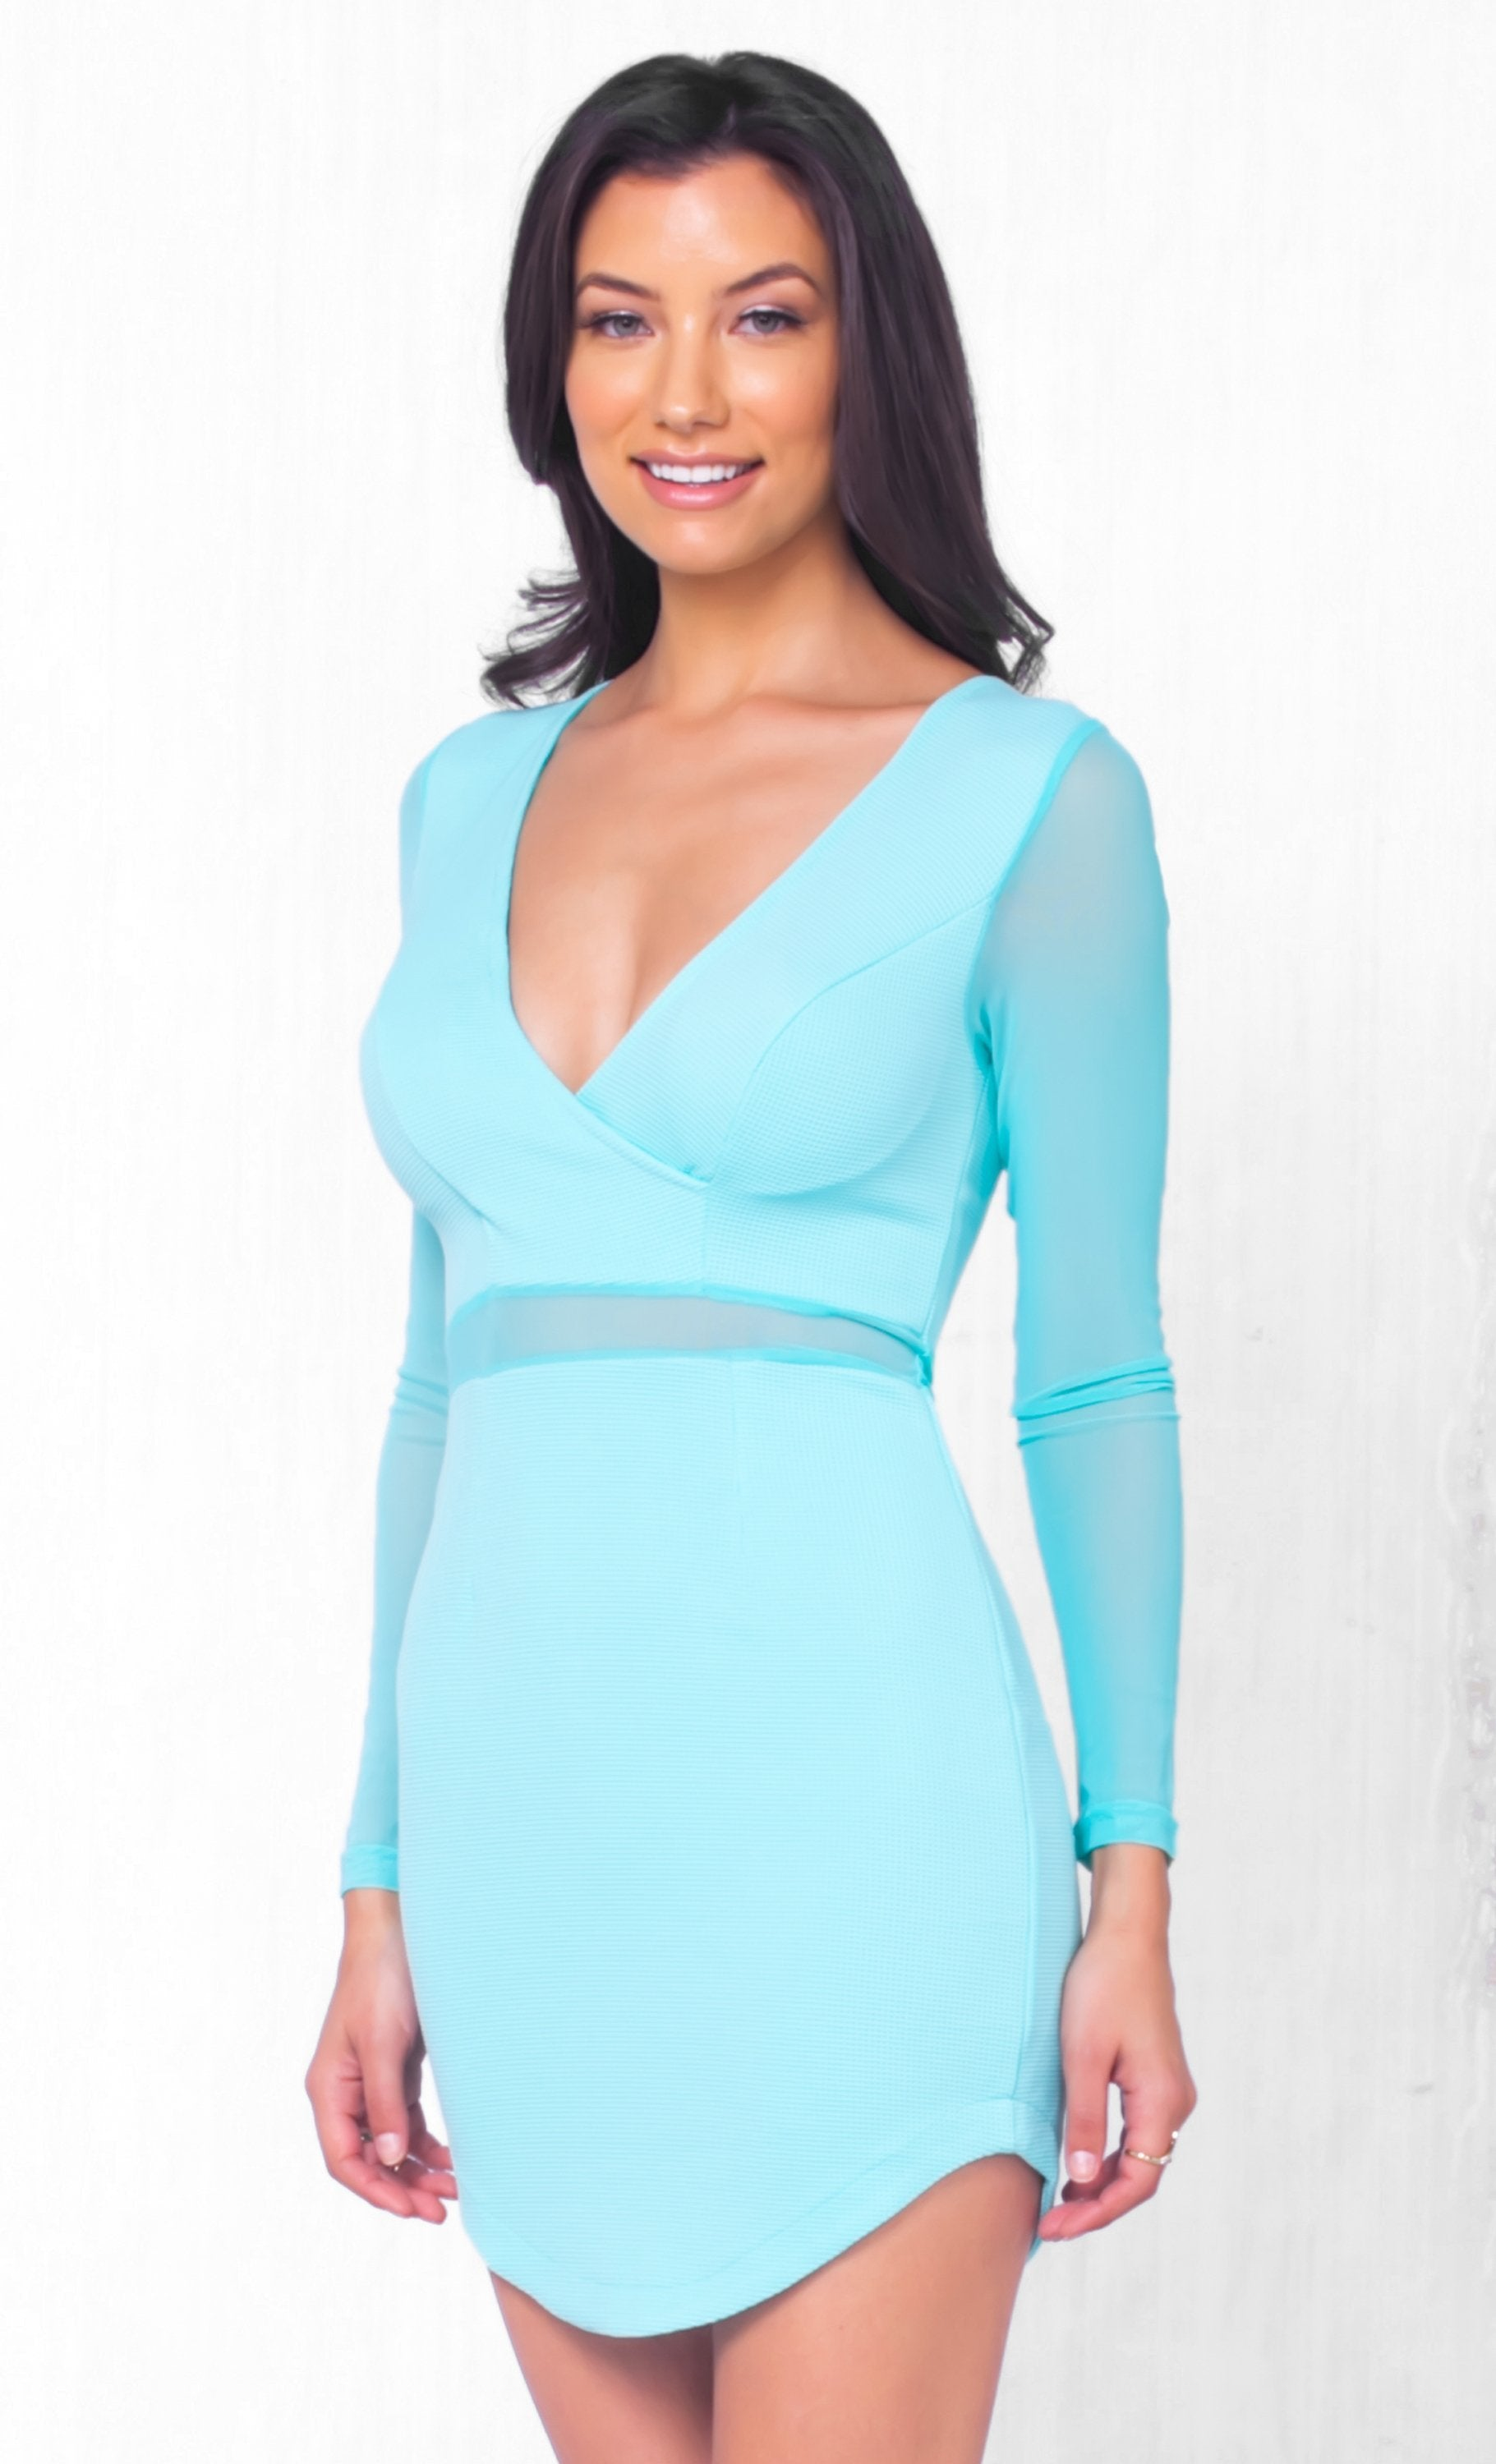 Indie XO Perfect Mesh Aqua Blue Black Sheer Mesh Accent Long Sleeve Cross Wrap V Neck Bodycon Mini Dress - Just Ours! - Sold Out